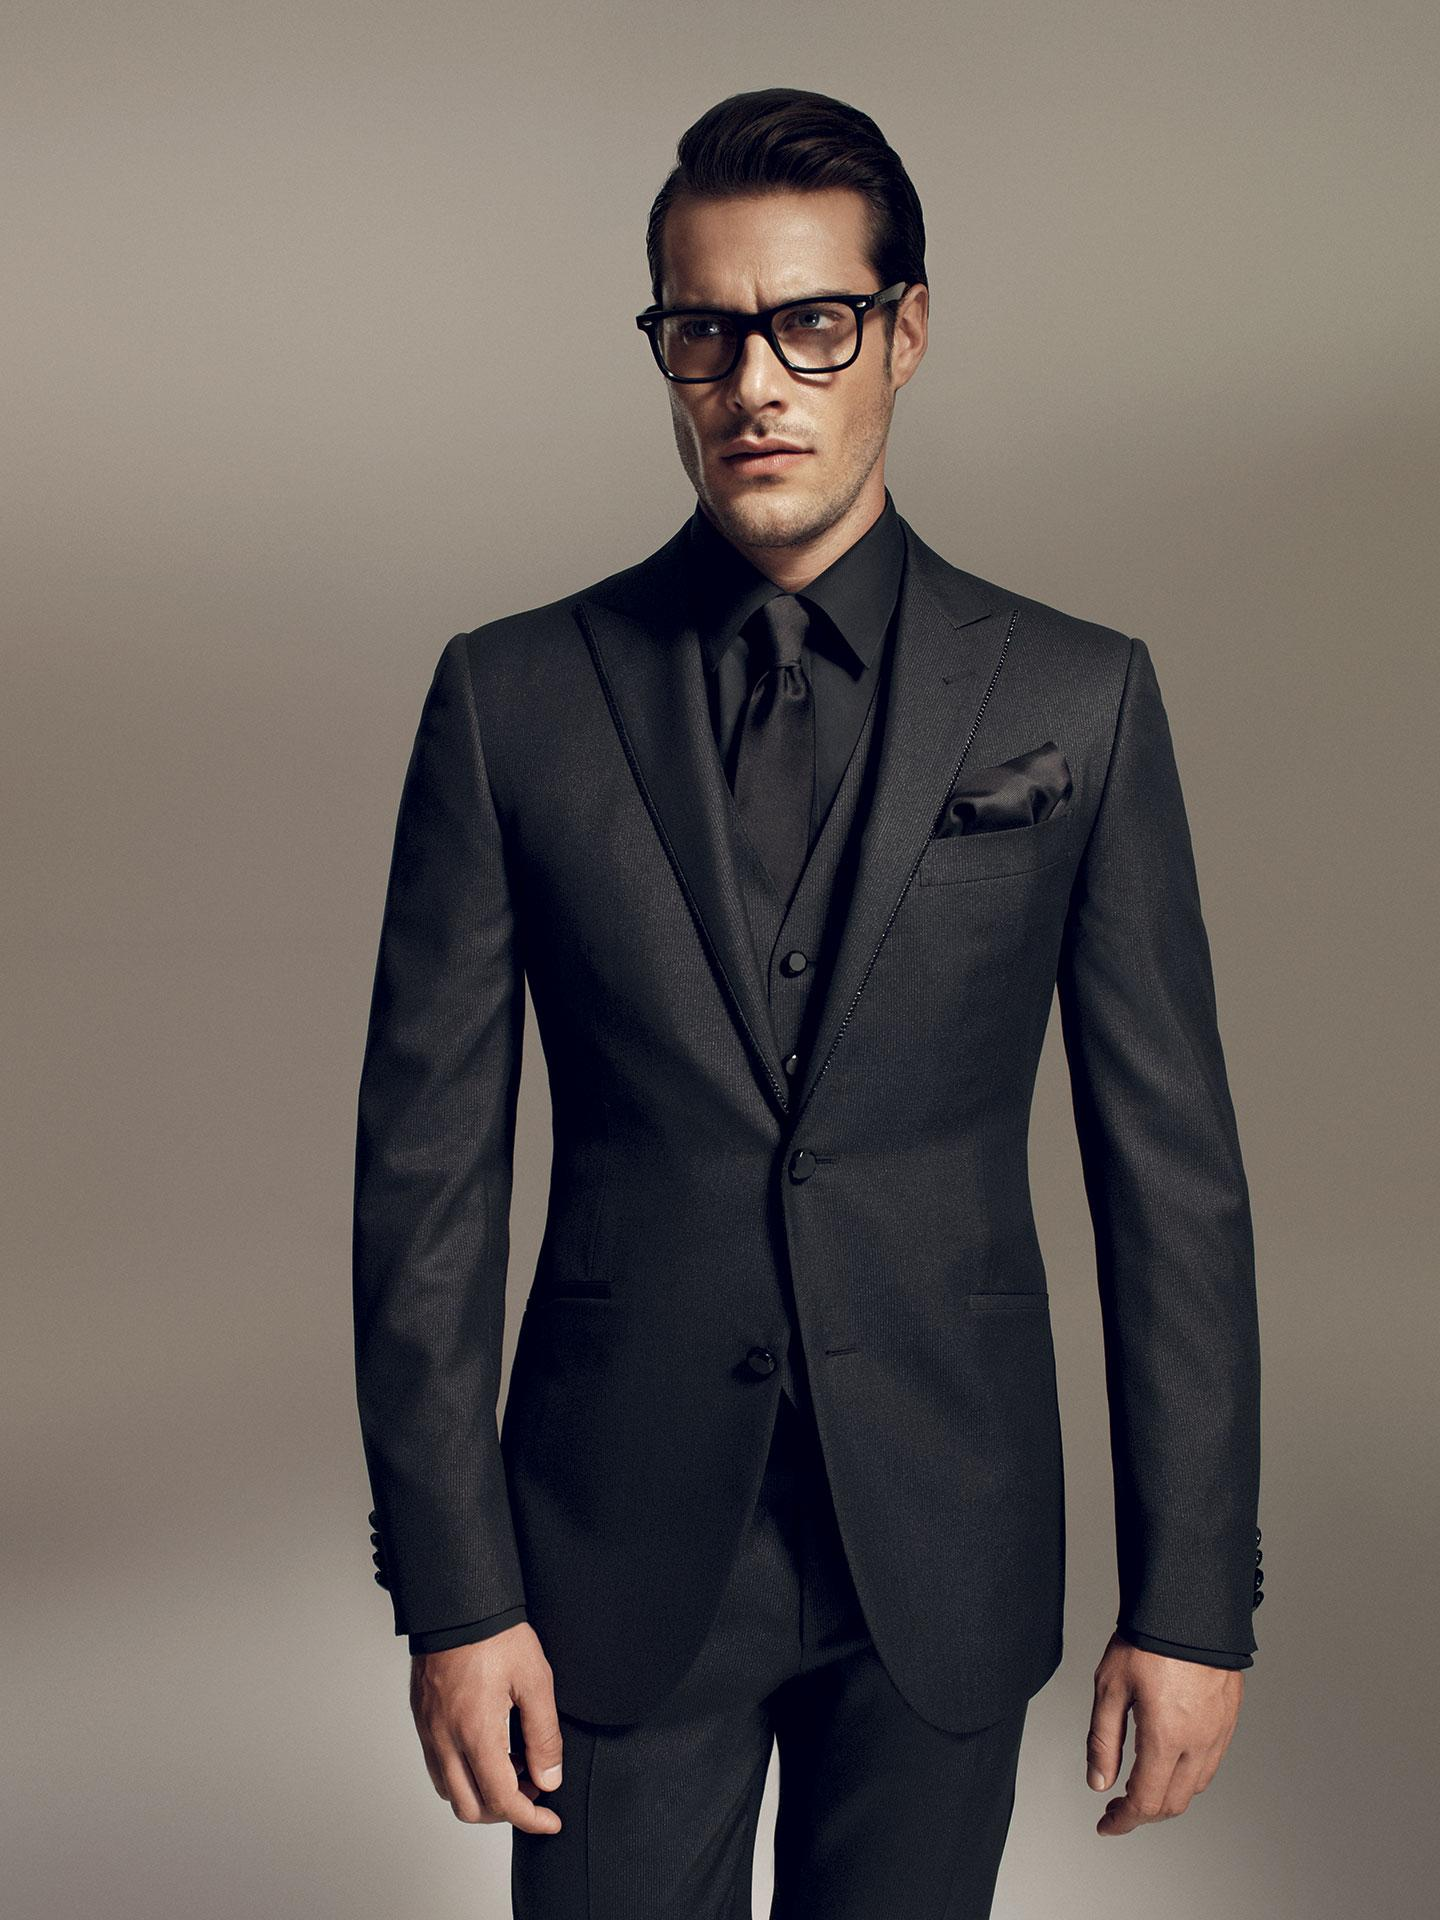 Matching Shirt For Black Suit - Go Suits